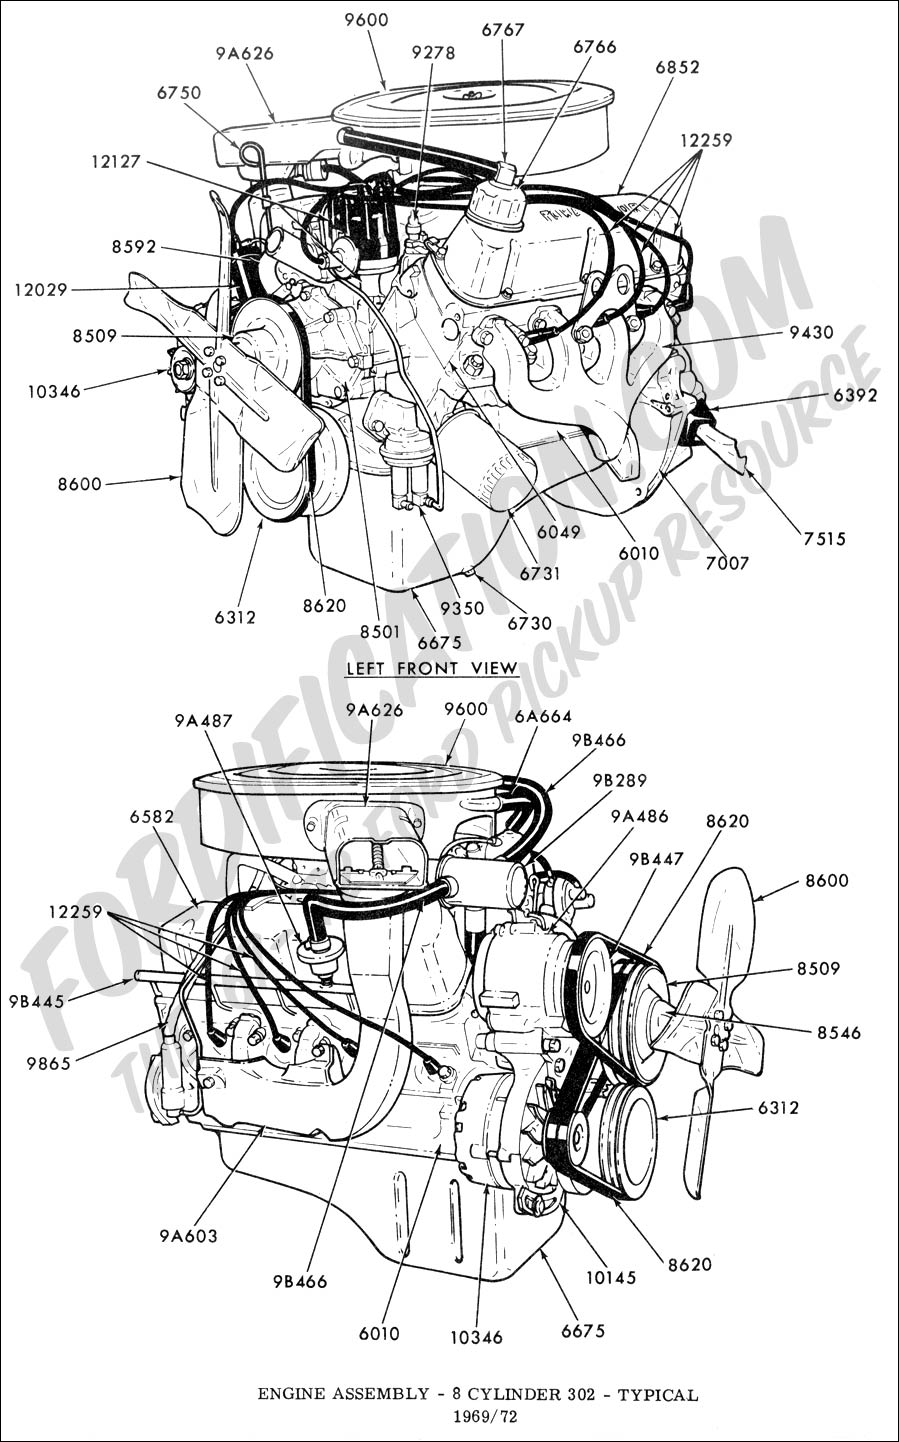 1994 Ford F150 Cooling System Diagram besides 7e2l7 Oldsmobile Cutlass Ciera Own 1996 Olds Ciera further Diagram 5 3 Vortec Engine Inspirational 5 3 Vortec Cooling System Flow Diagram 5 Free Engine moreover 986625 1970 F 100 2wd Fuel Pump Question Please besides 1992 Ford F150 Pulley Diagram. on 1995 ford taurus water pump